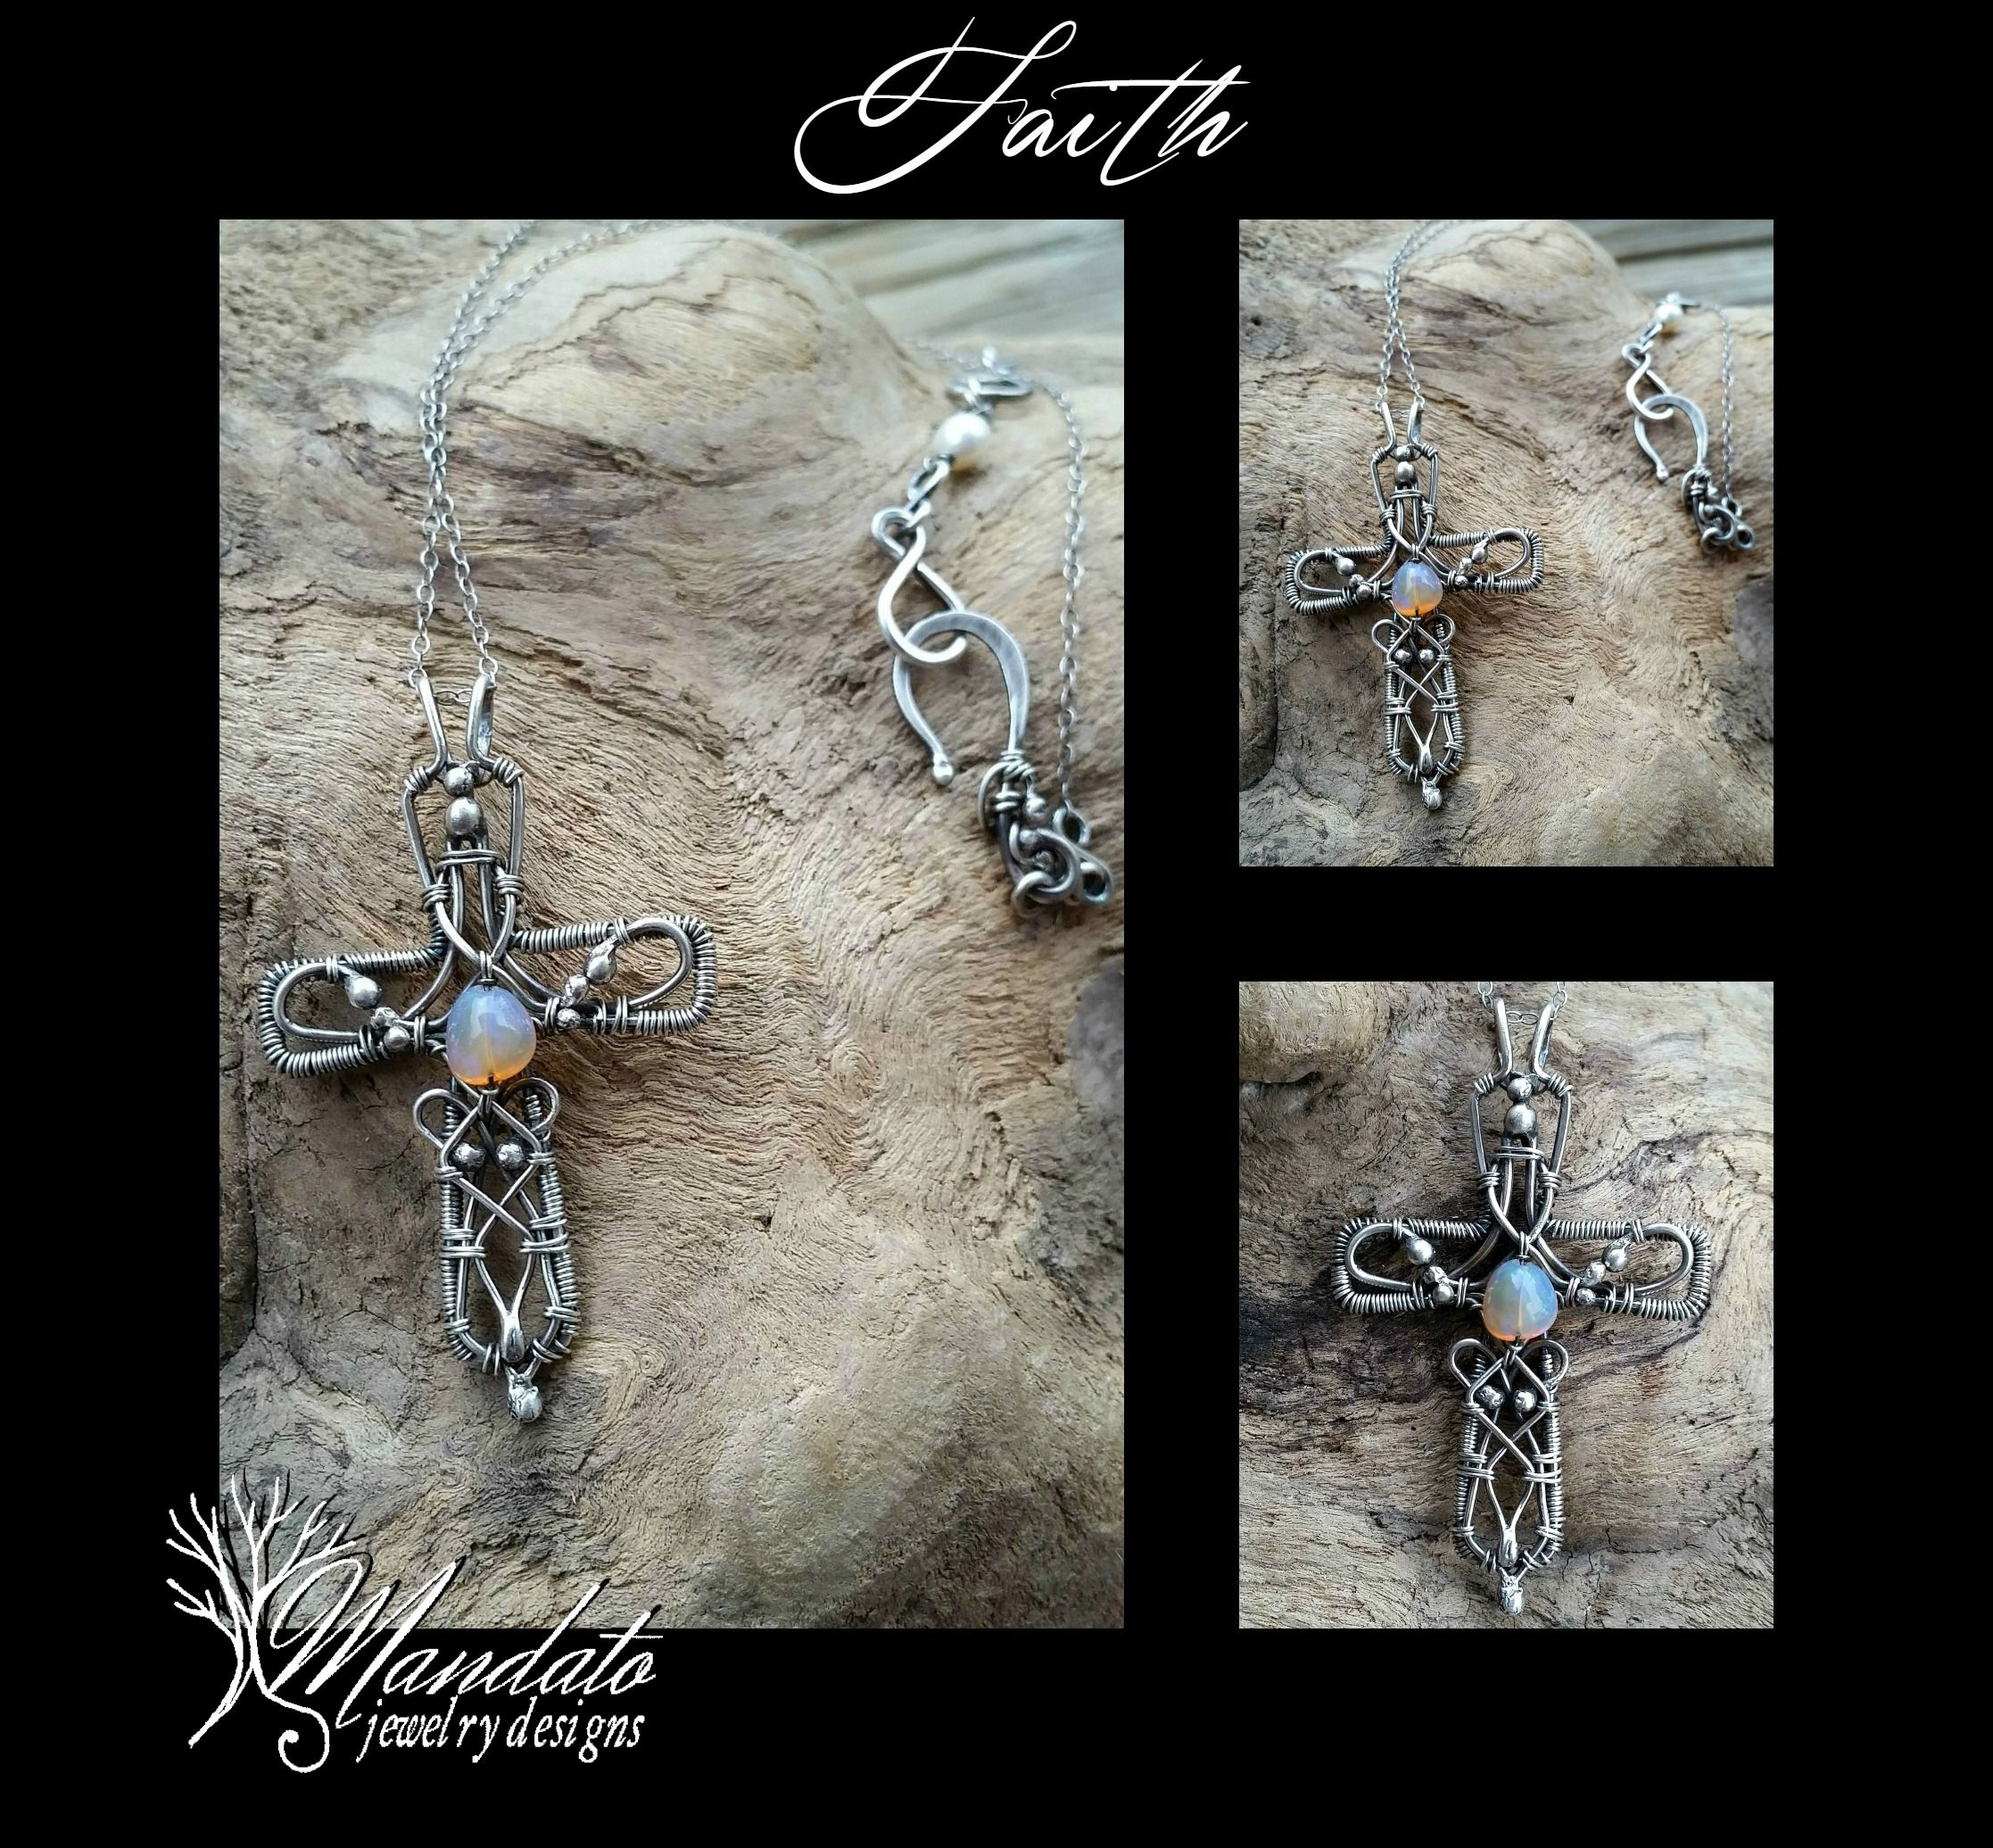 Faith is now available by Mandato Jewelry designs. Find us on facebook! https://www.facebook.com/MandatoJewelryDesigns